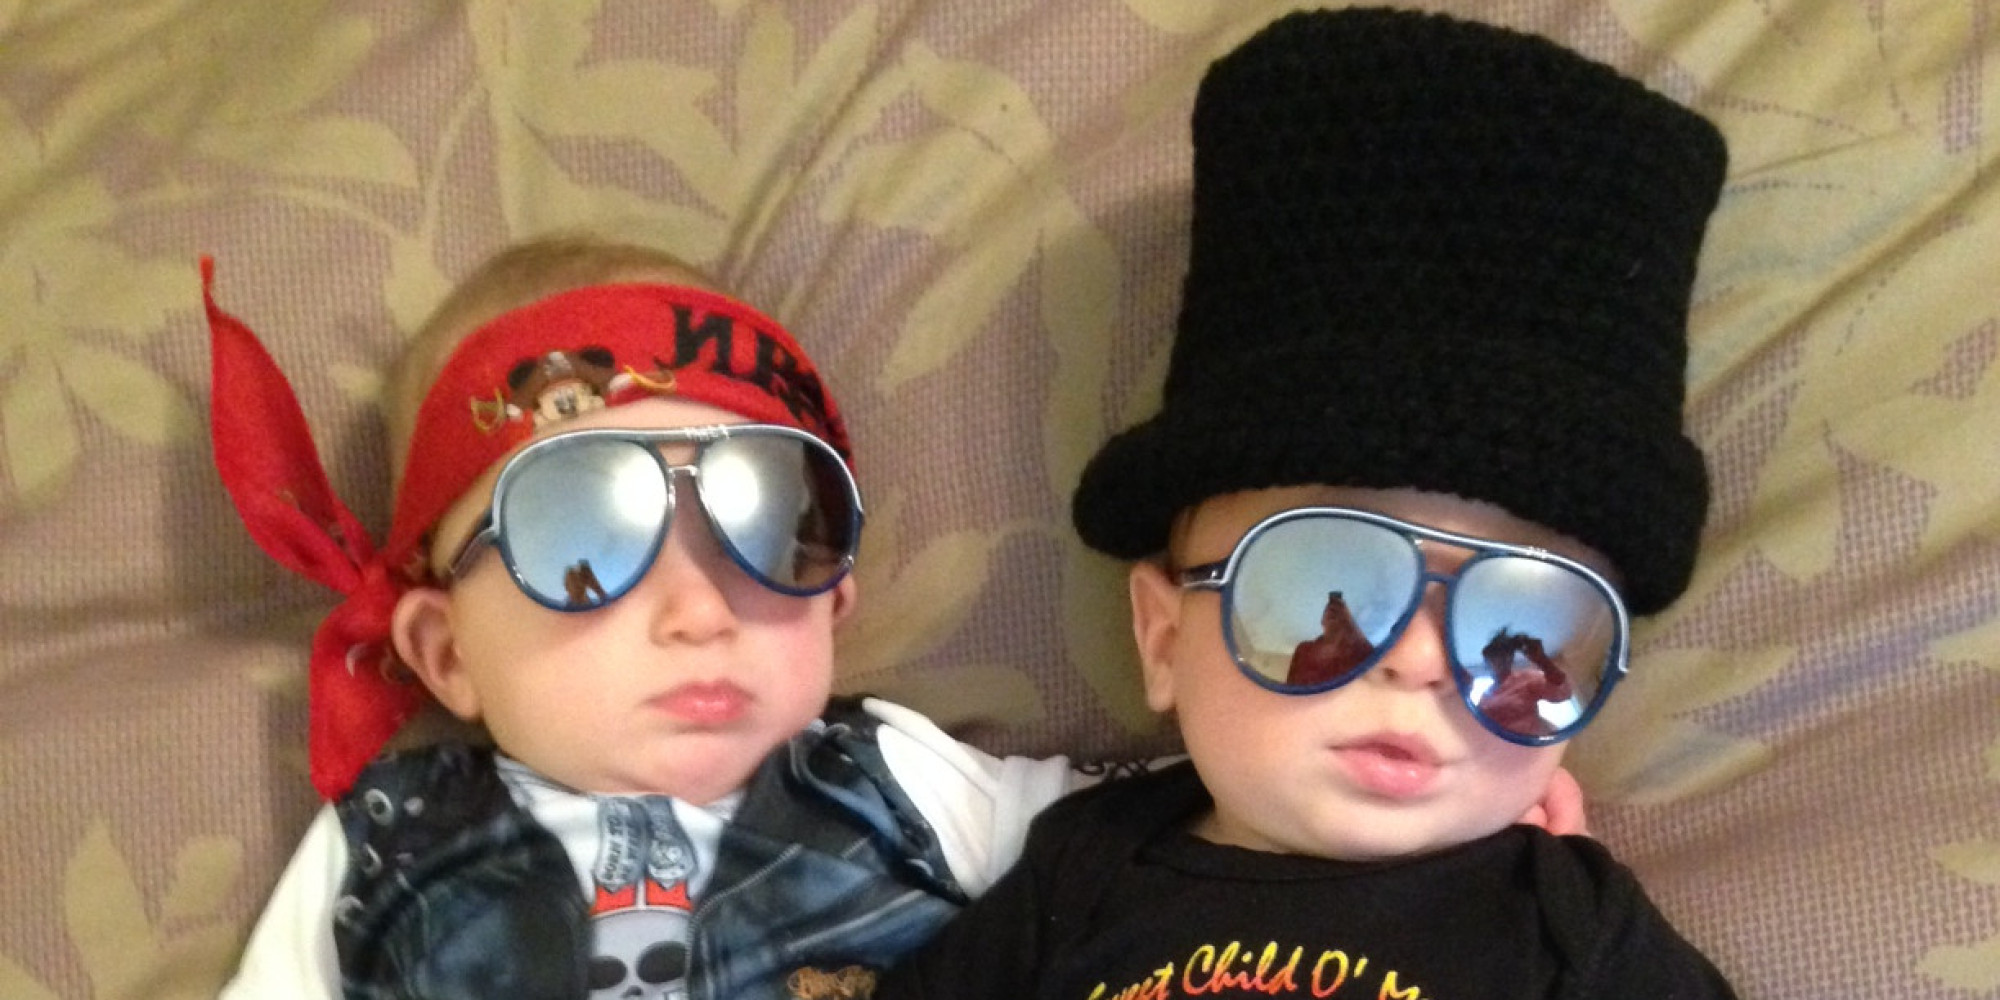 sc 1 st  HuffPost & Halloween Costumes For Twins That Will Win You Over Twice | HuffPost